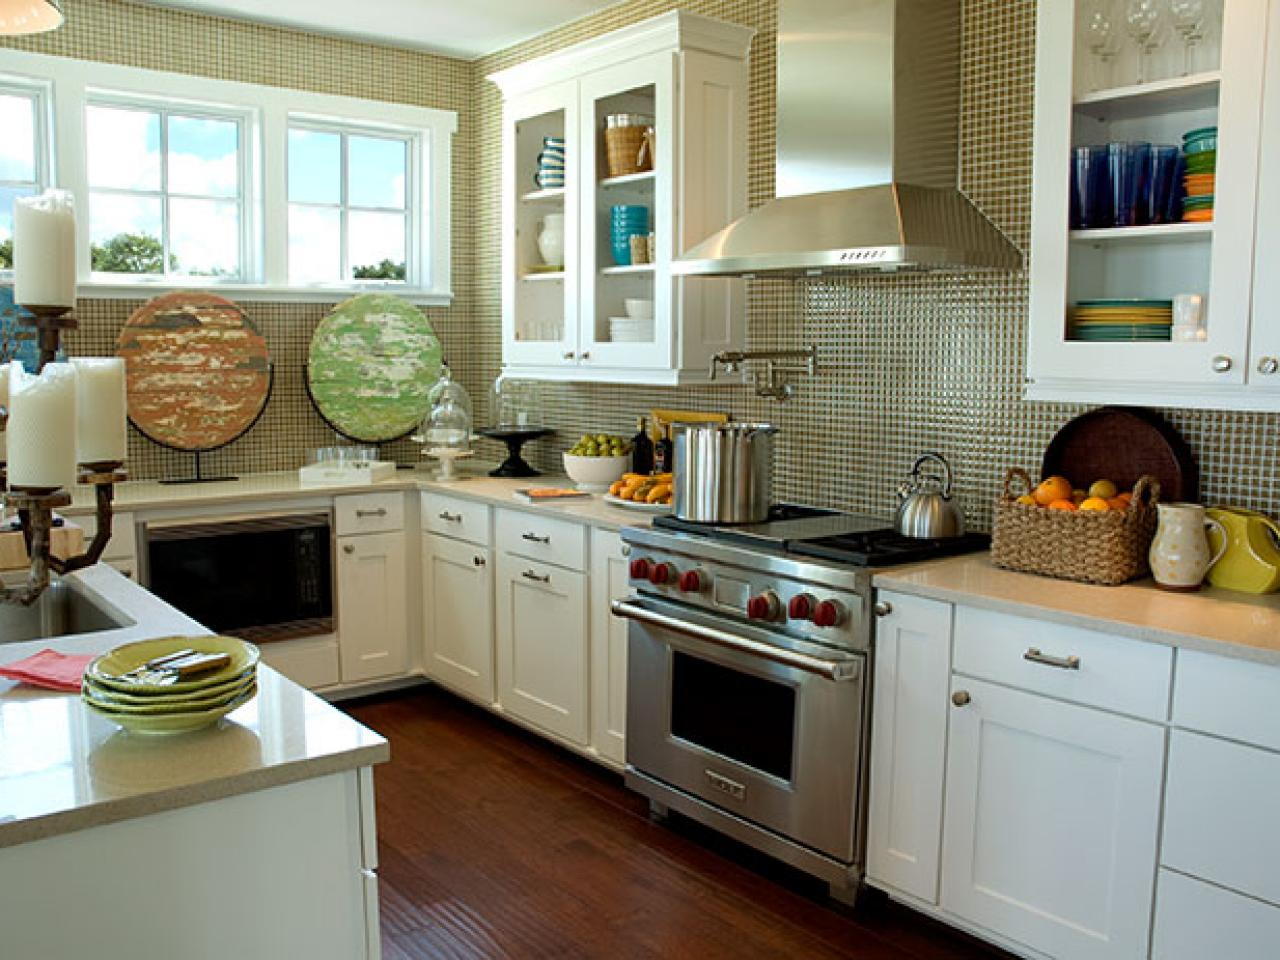 Beautiful Hgtv Dream Home Kitchens Kitchen Ideas Design With Cabinets Islands Backsplashes